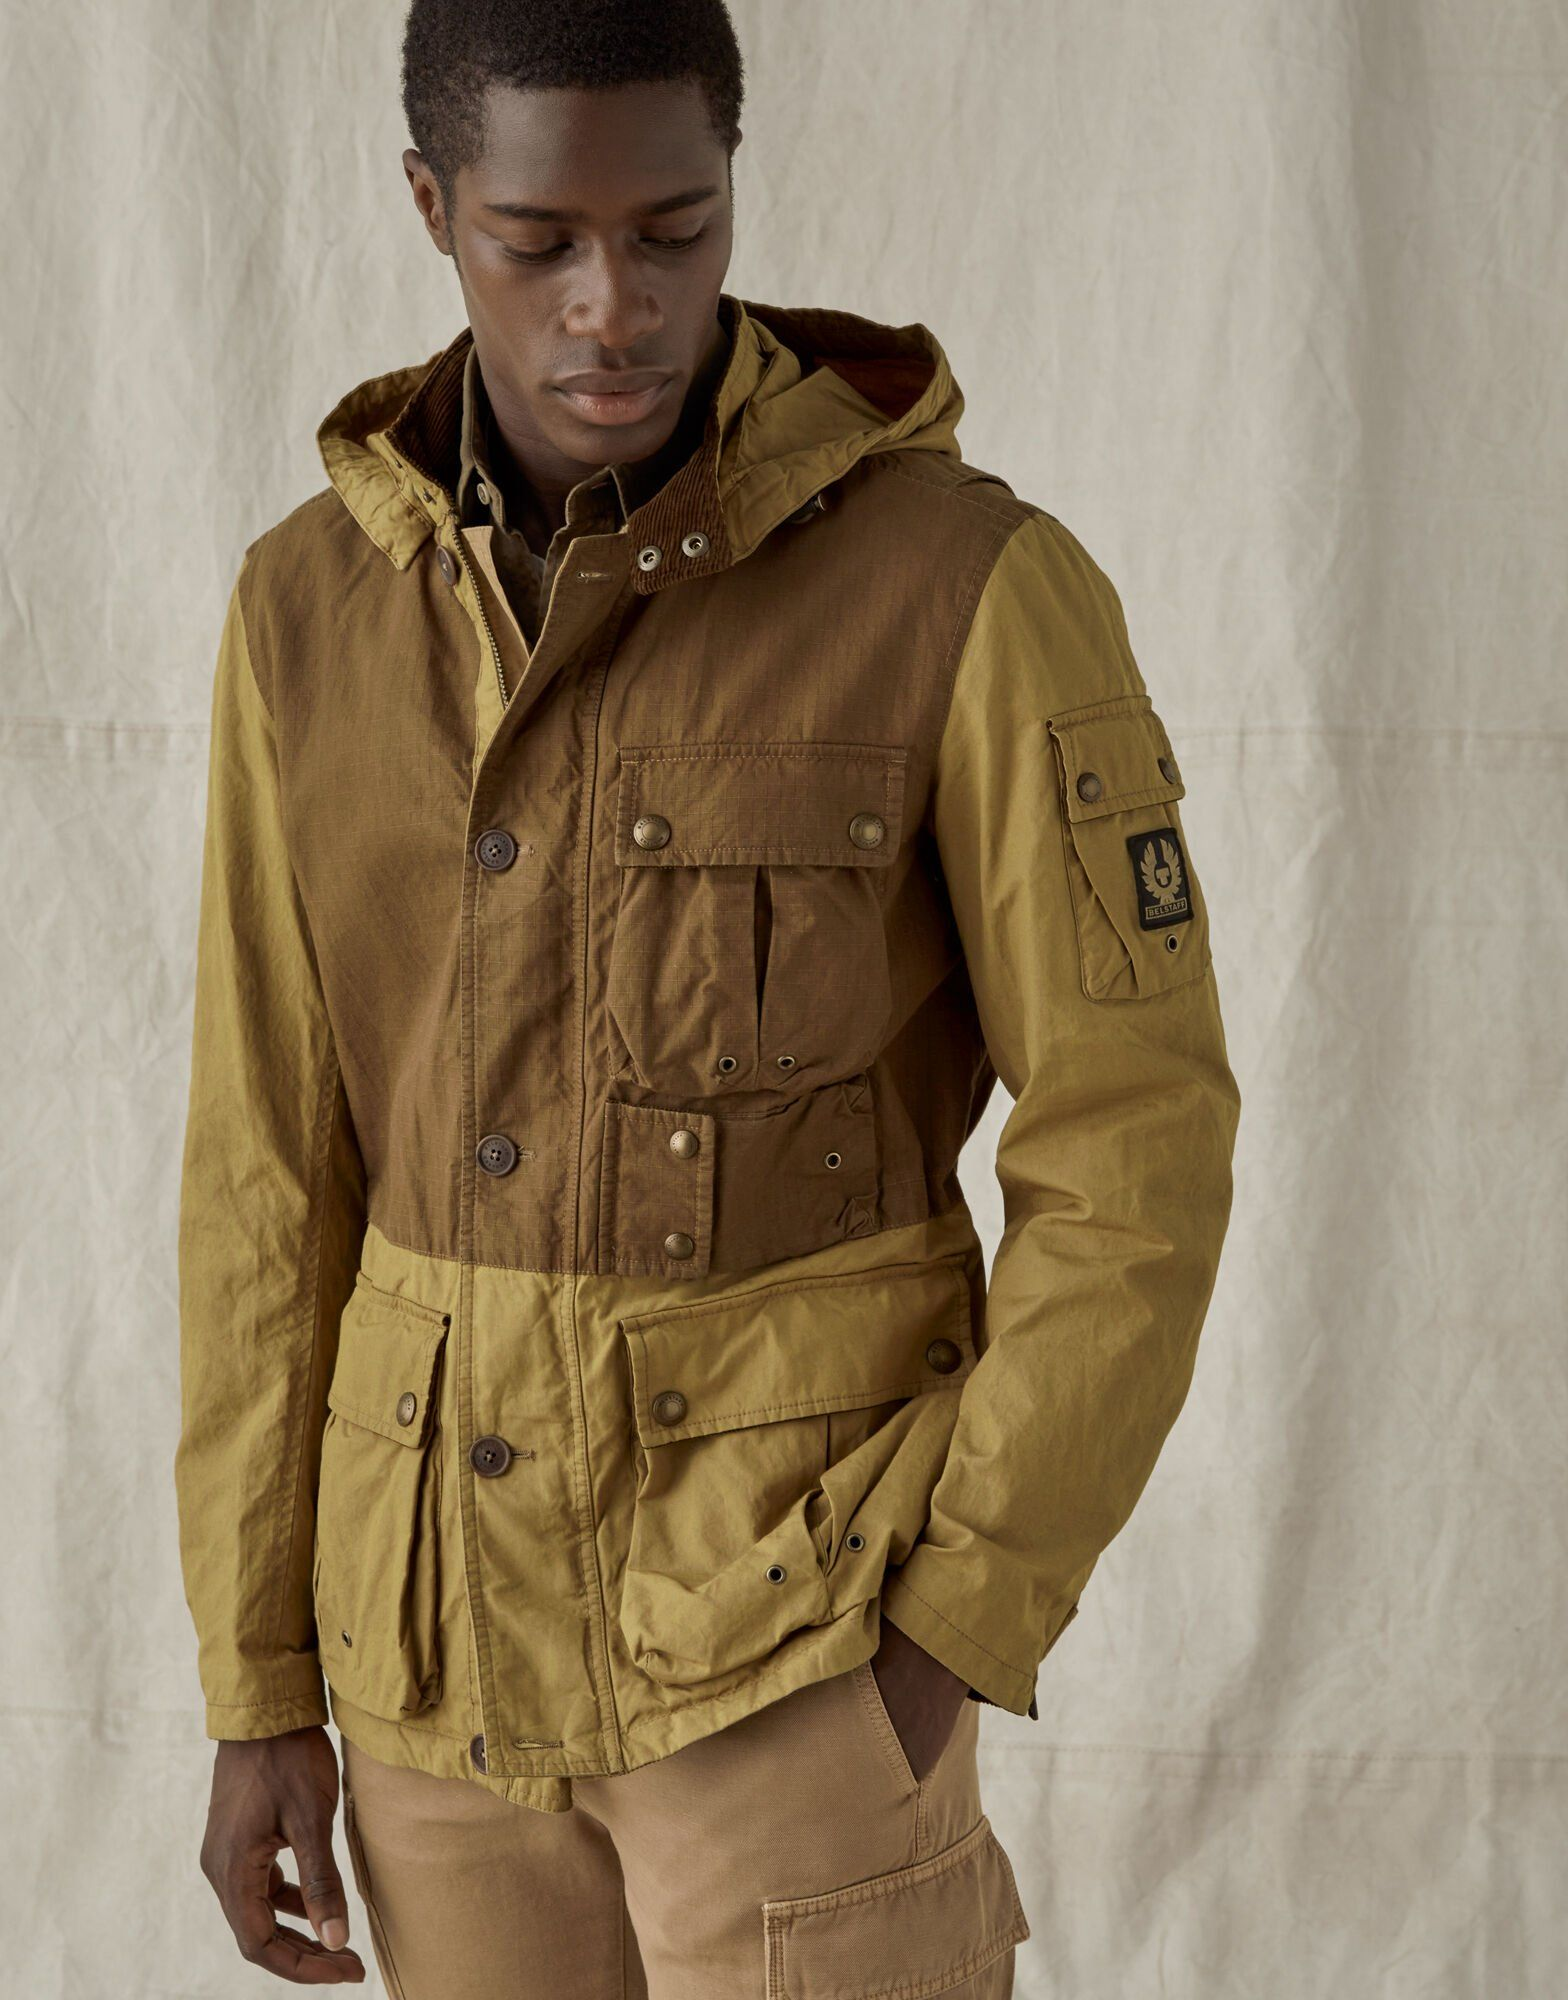 Belstaff Longwing Jacket With Hood Combines Lightweight Dry Waxed And Ripstop Cotton For A Striking Mixed Media Jacket W Jackets Men S Coats Jackets Belstaff [ 2000 x 1568 Pixel ]